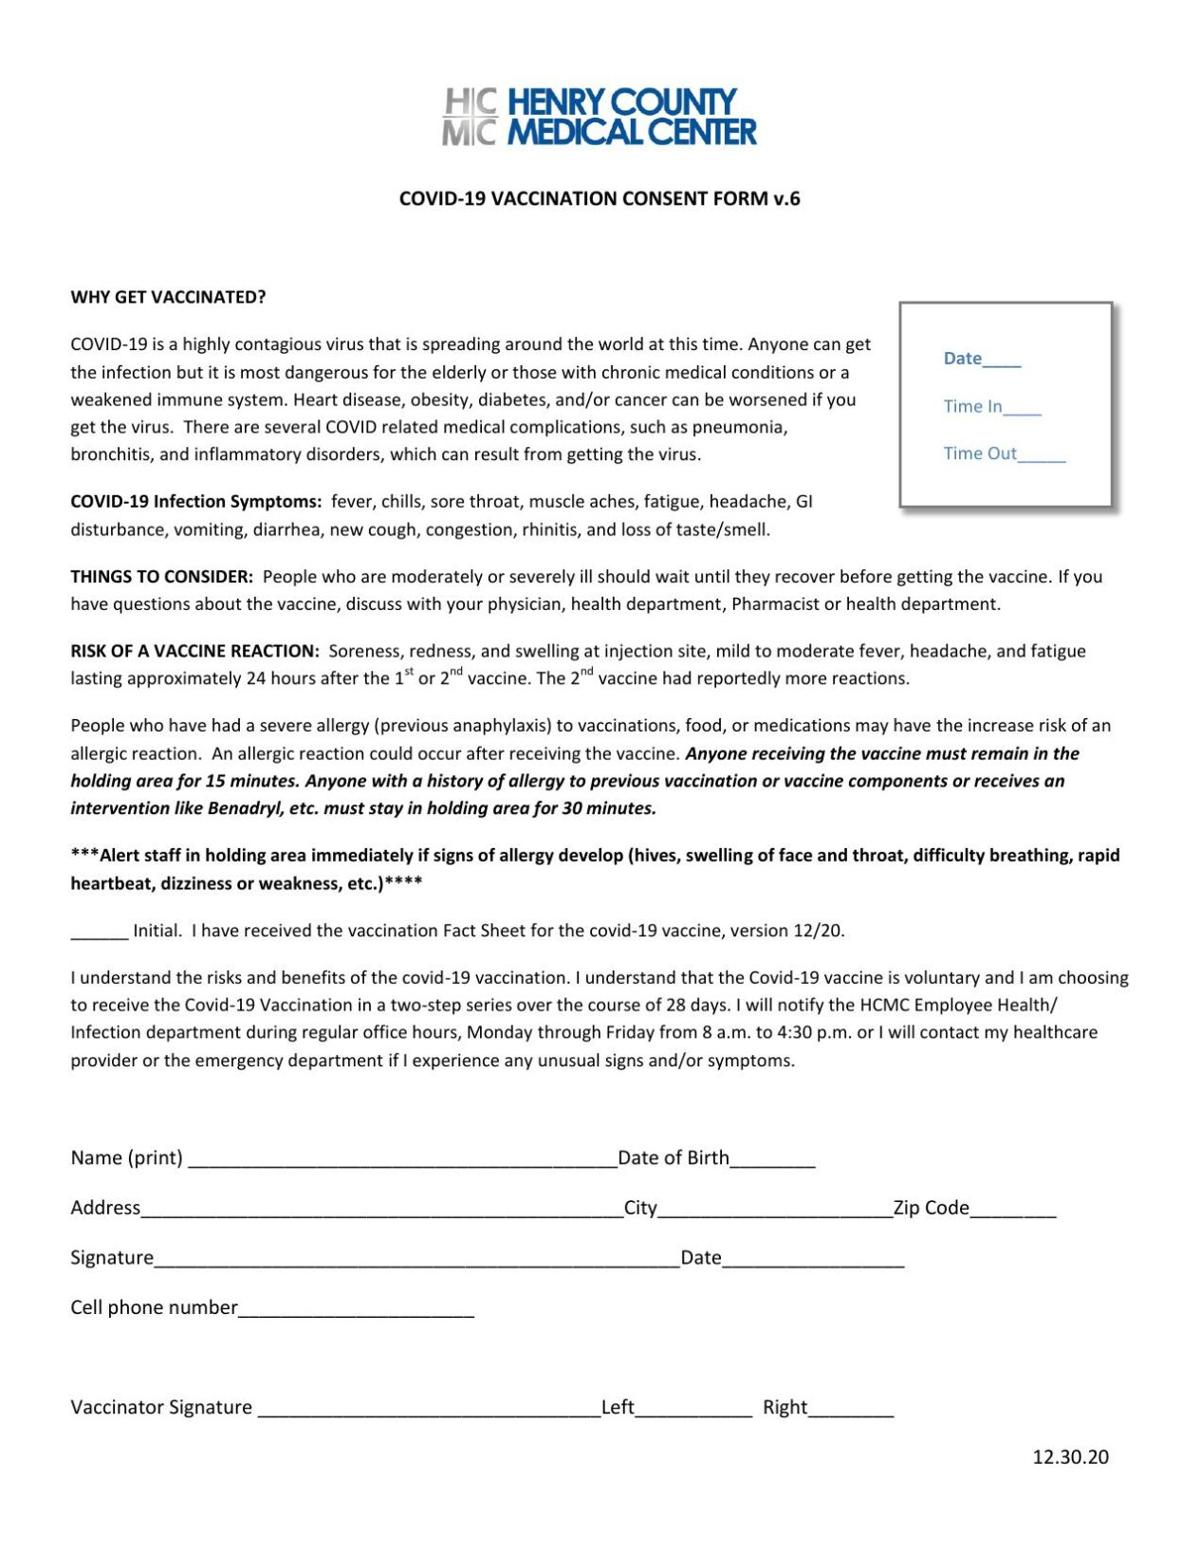 Henry County Medical Center COVID-19 vaccination consent form